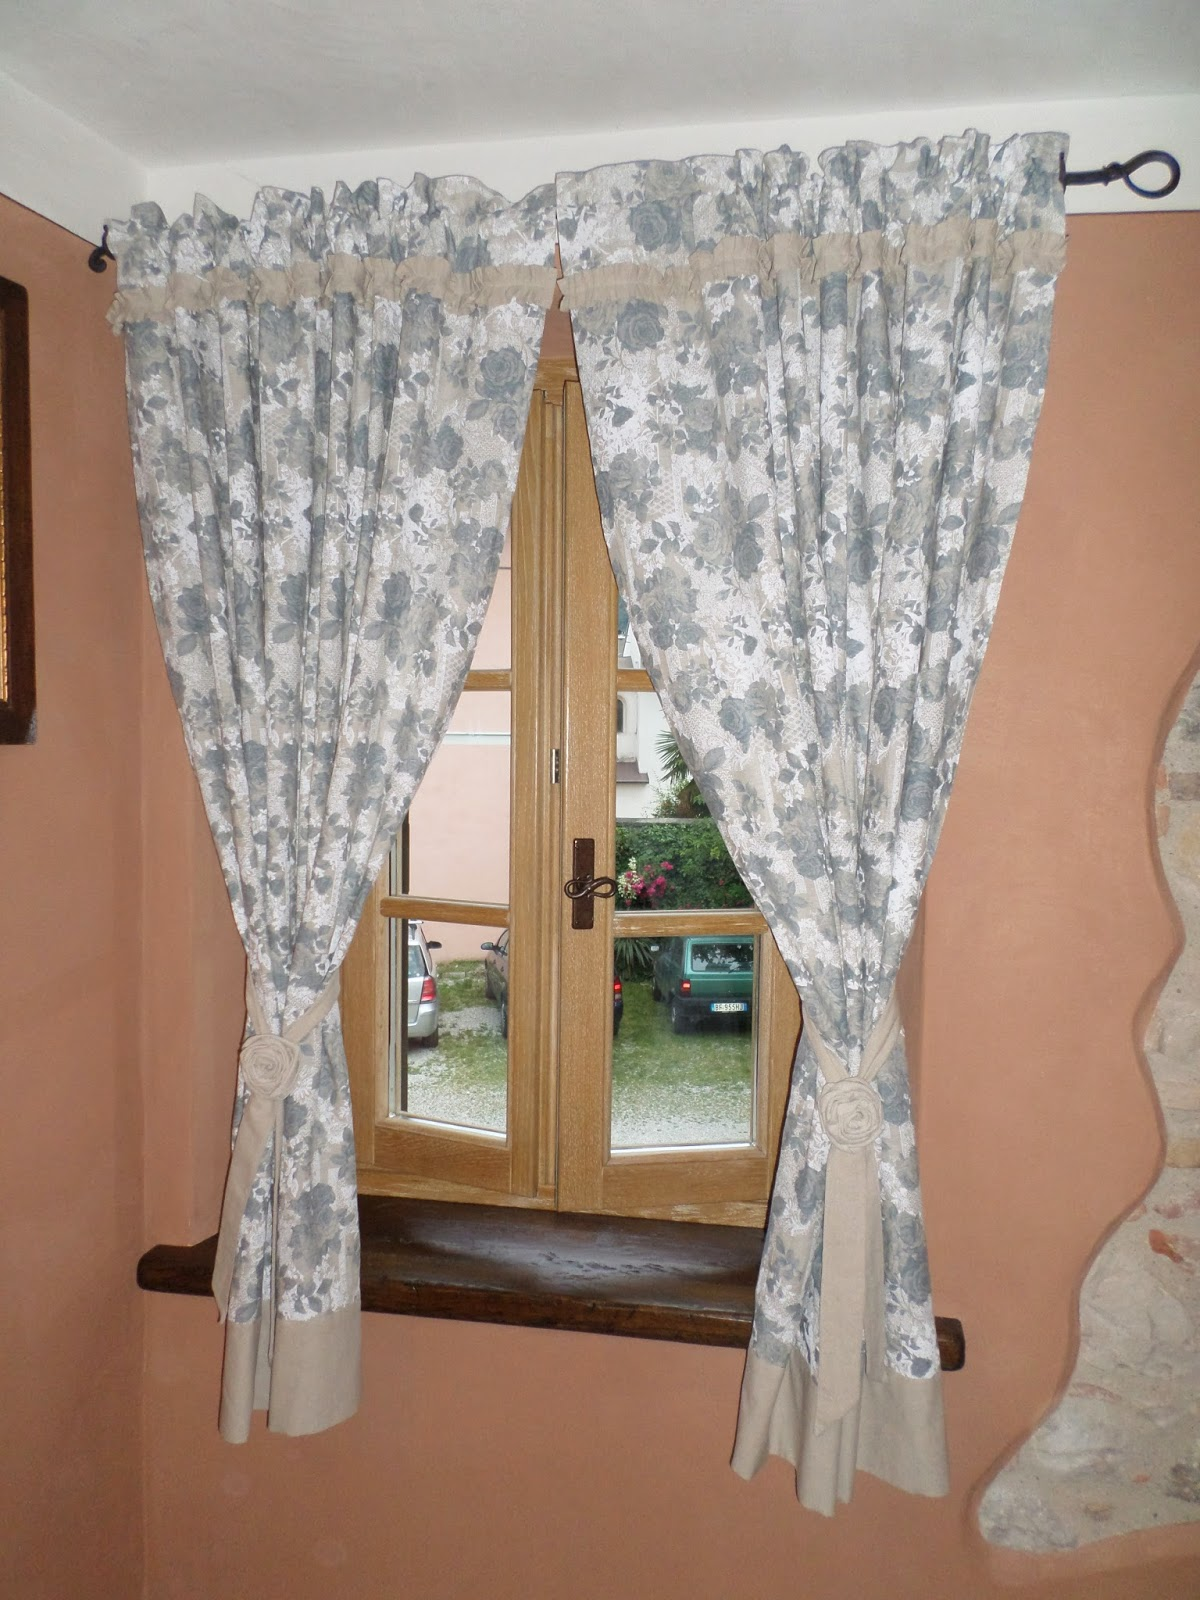 cuori pezze e fantasia by Francy : Tende in stile country chic